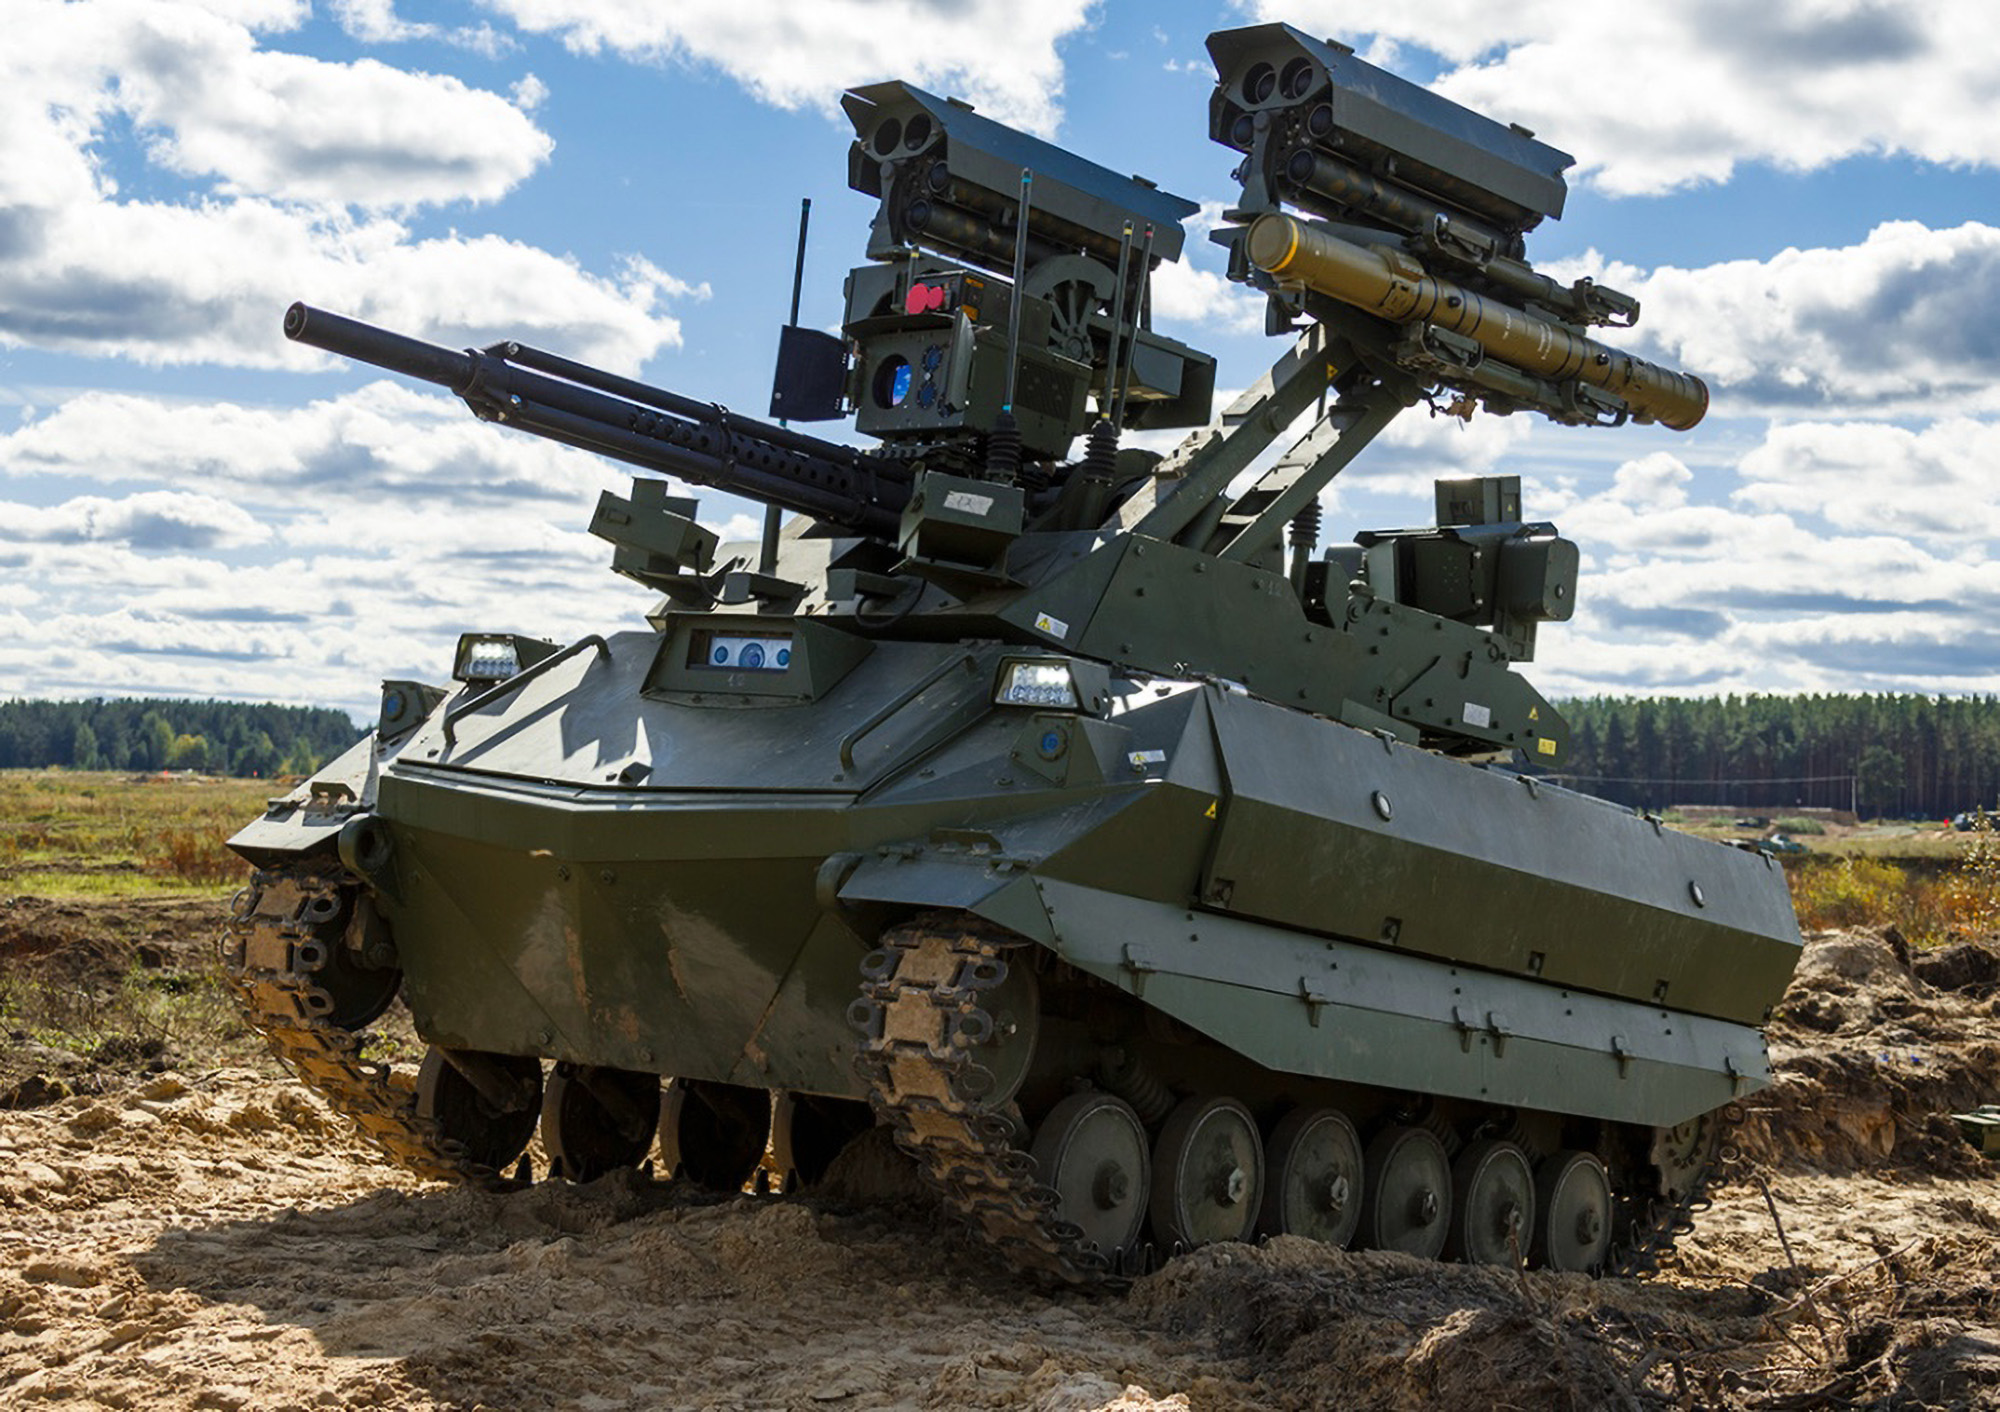 <p>The Uran-9, a high-tech tracked unmanned combat tank, was used during the Zapad-2021 military exercises run by Russia and Belarus that ended on Sept. 16. (Ministry of Defence of the Russian Federation/Zenger)</p>